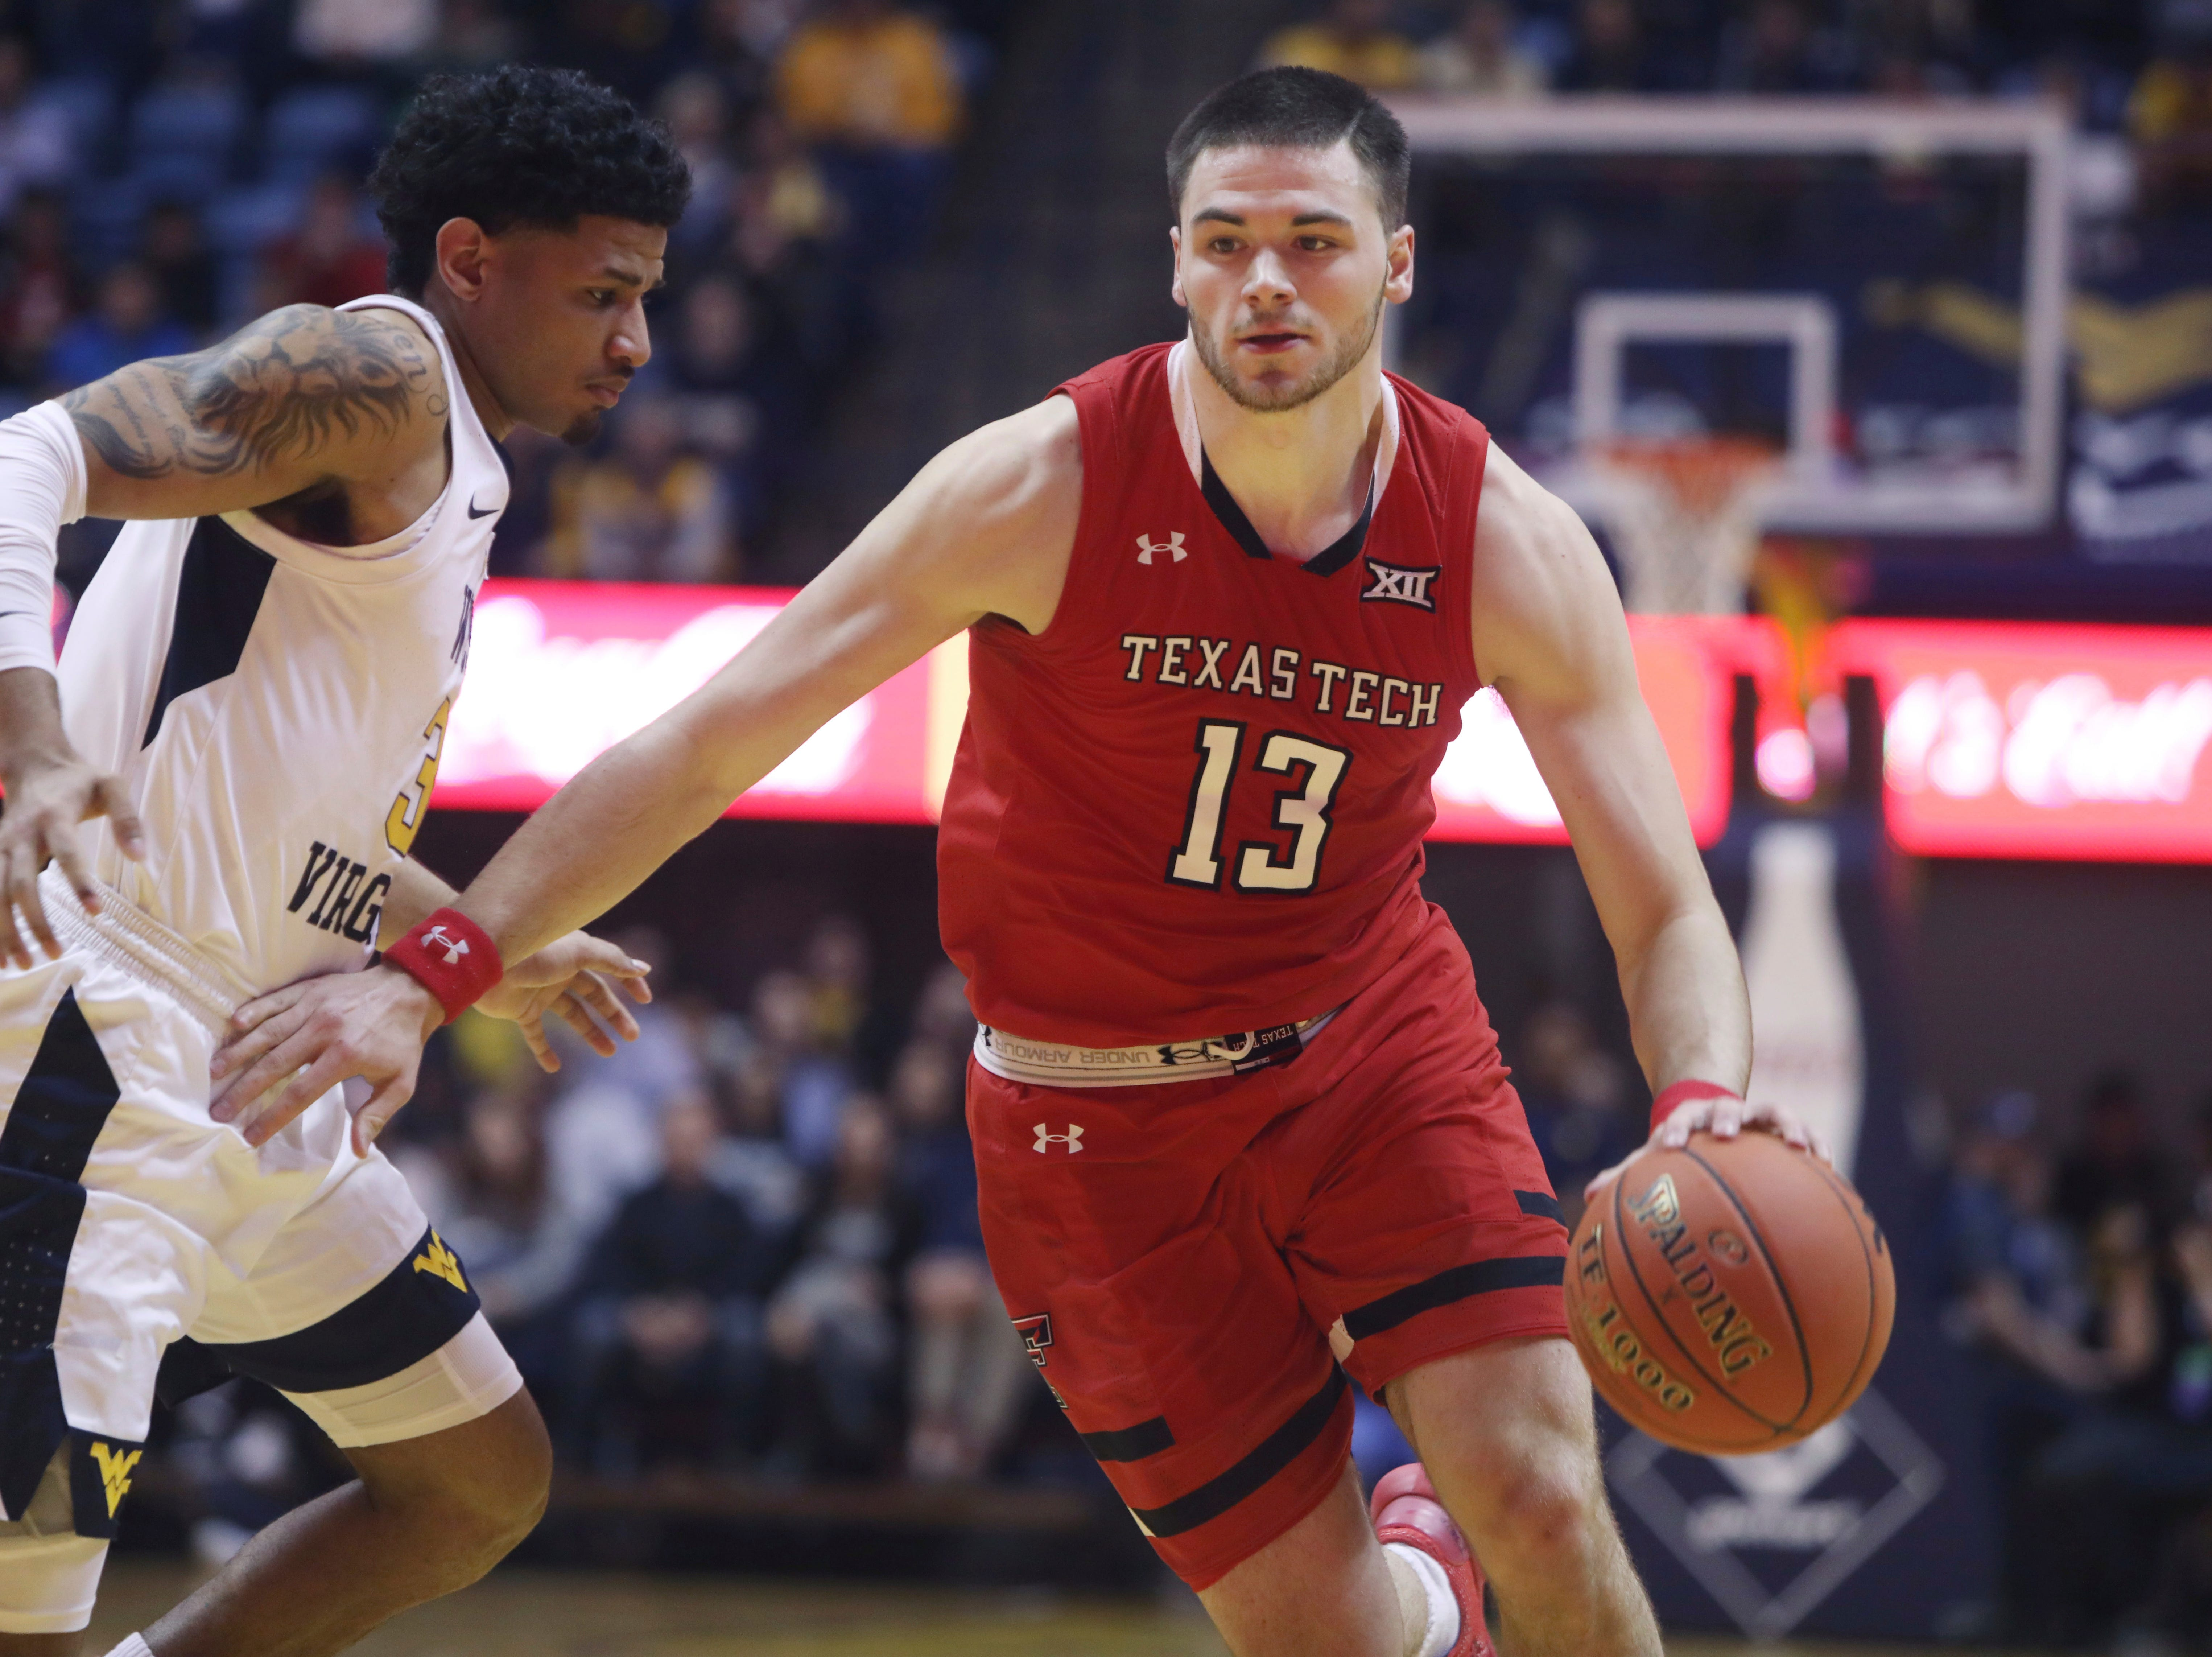 Texas Tech guard Matt Mooney (13) drives up court while defended by West Virginia guard James Bolden (3) during the first half of an NCAA college basketball game Wednesday, Jan. 2, 2019, in Morgantown, W.Va.